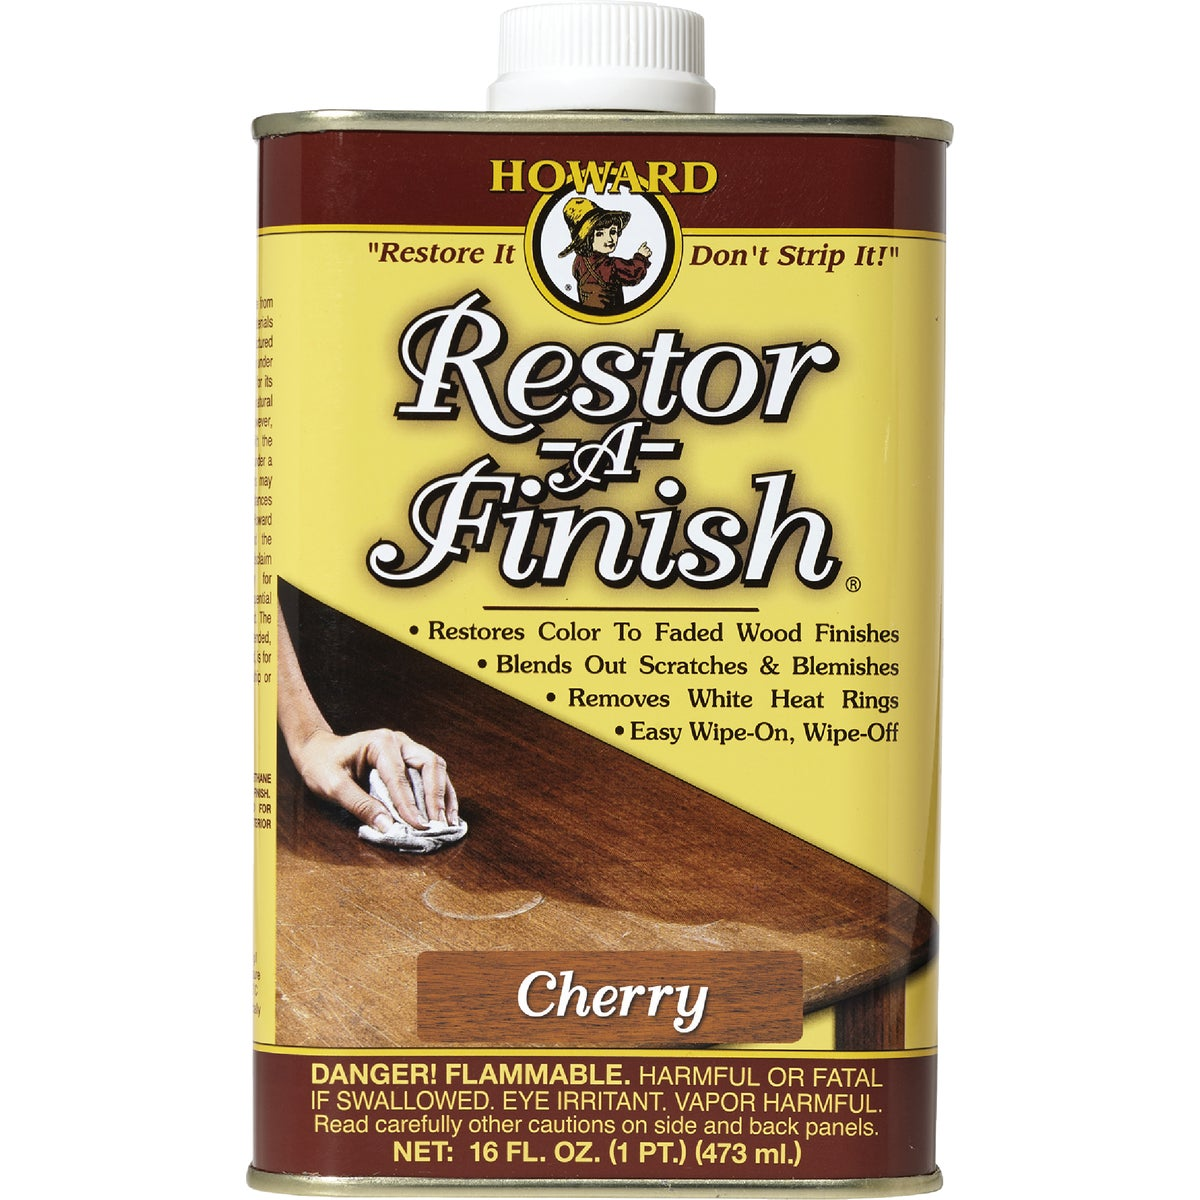 CHERRY RESTOR-A-FINISH